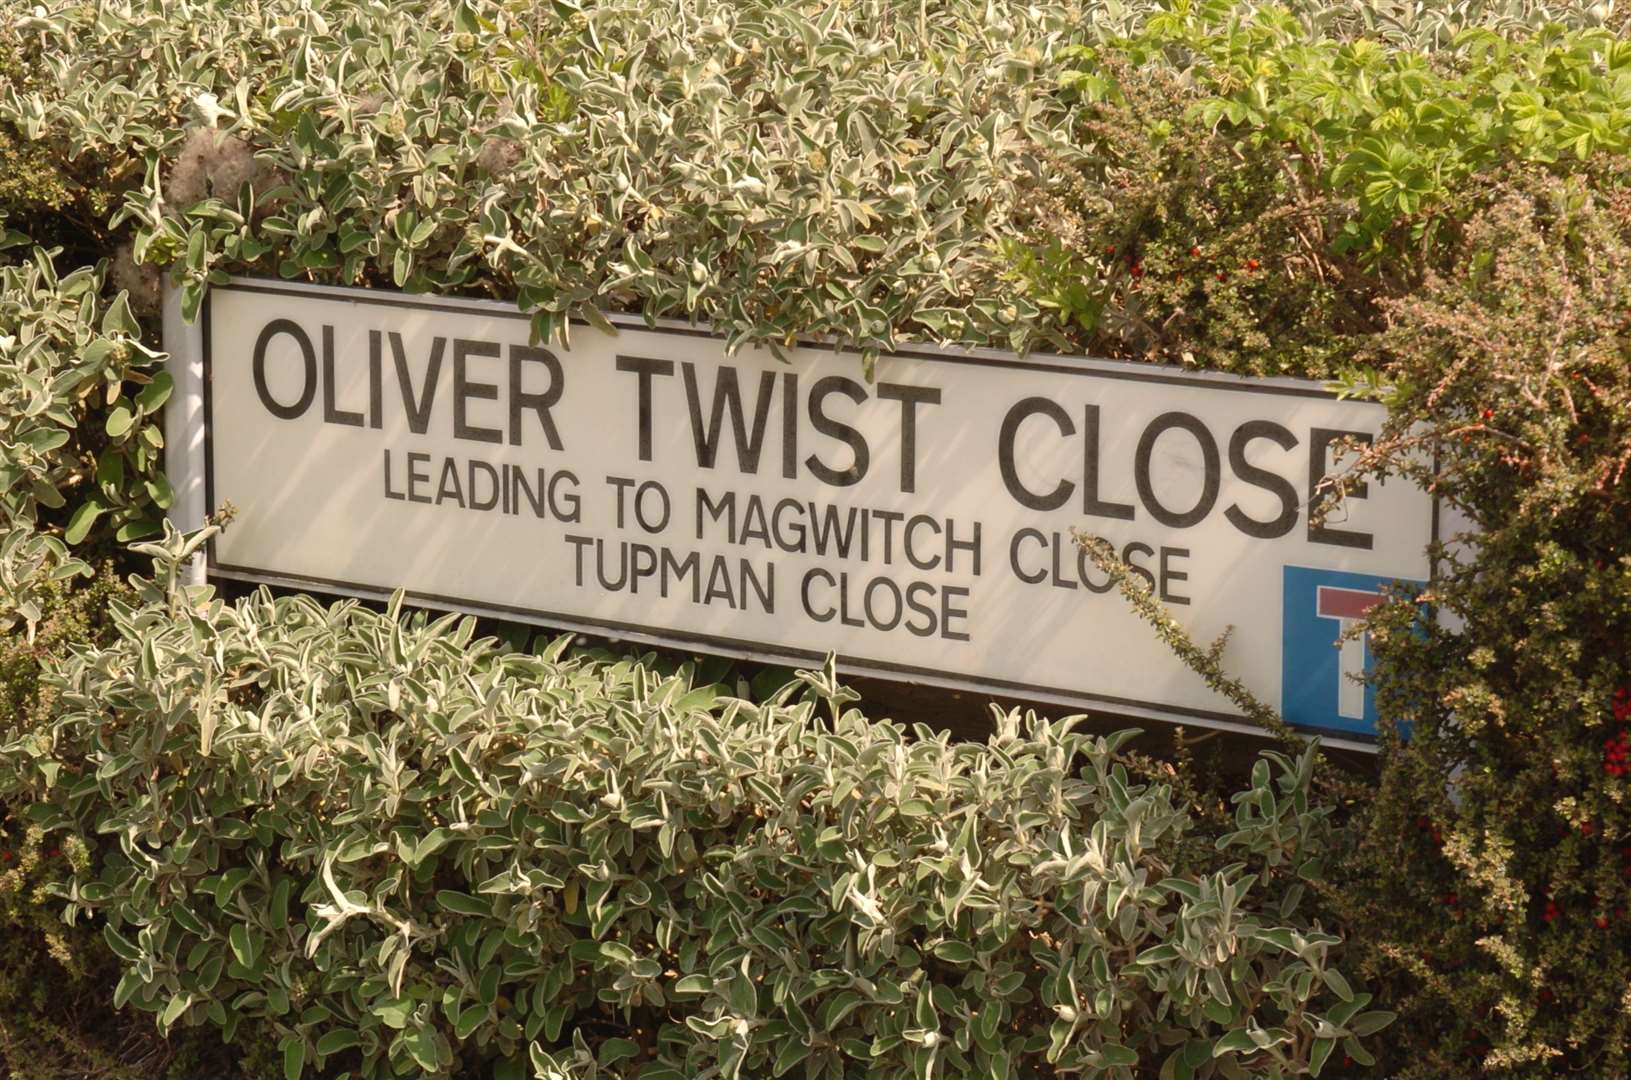 Oliver Twist Close, Rochester. Steve Crispe